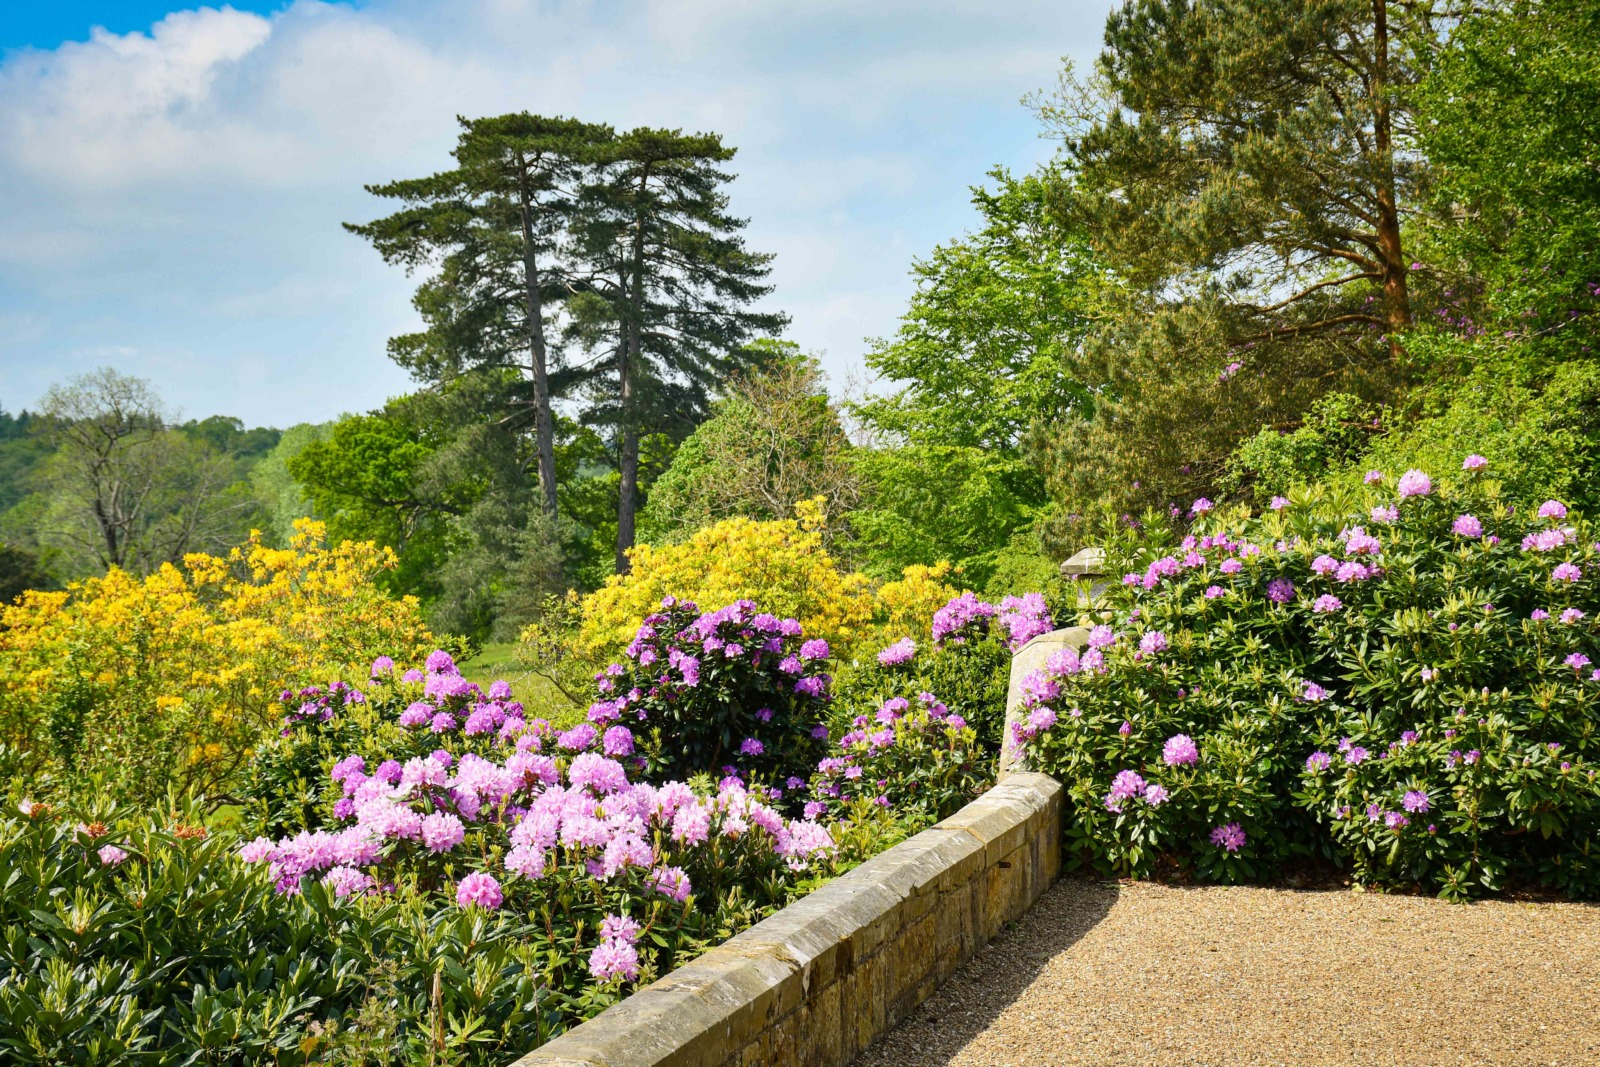 The gardens of Scotney House © French Moments